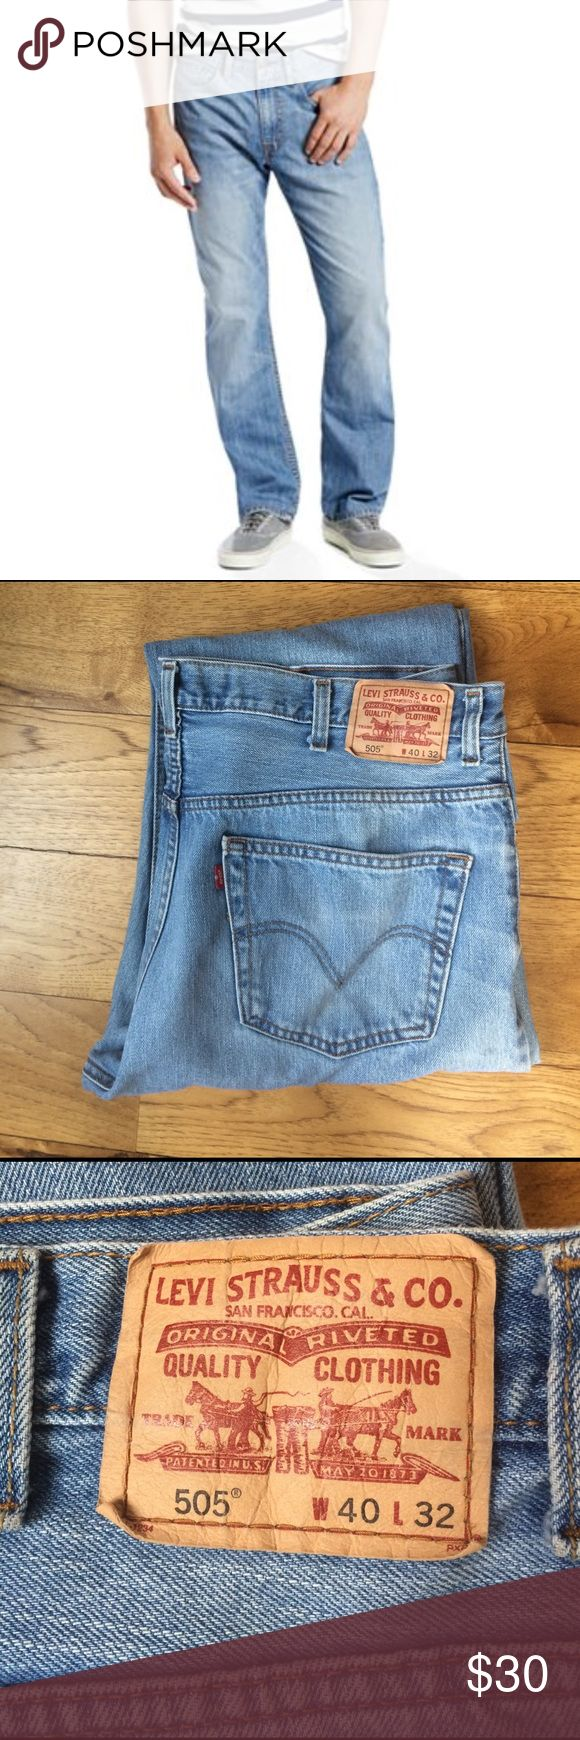 Men's Levis 505 Jeans Used but great condition. Soft denim fabric. W40 x L32. Regular Straight fit. Levi's Jeans Straight